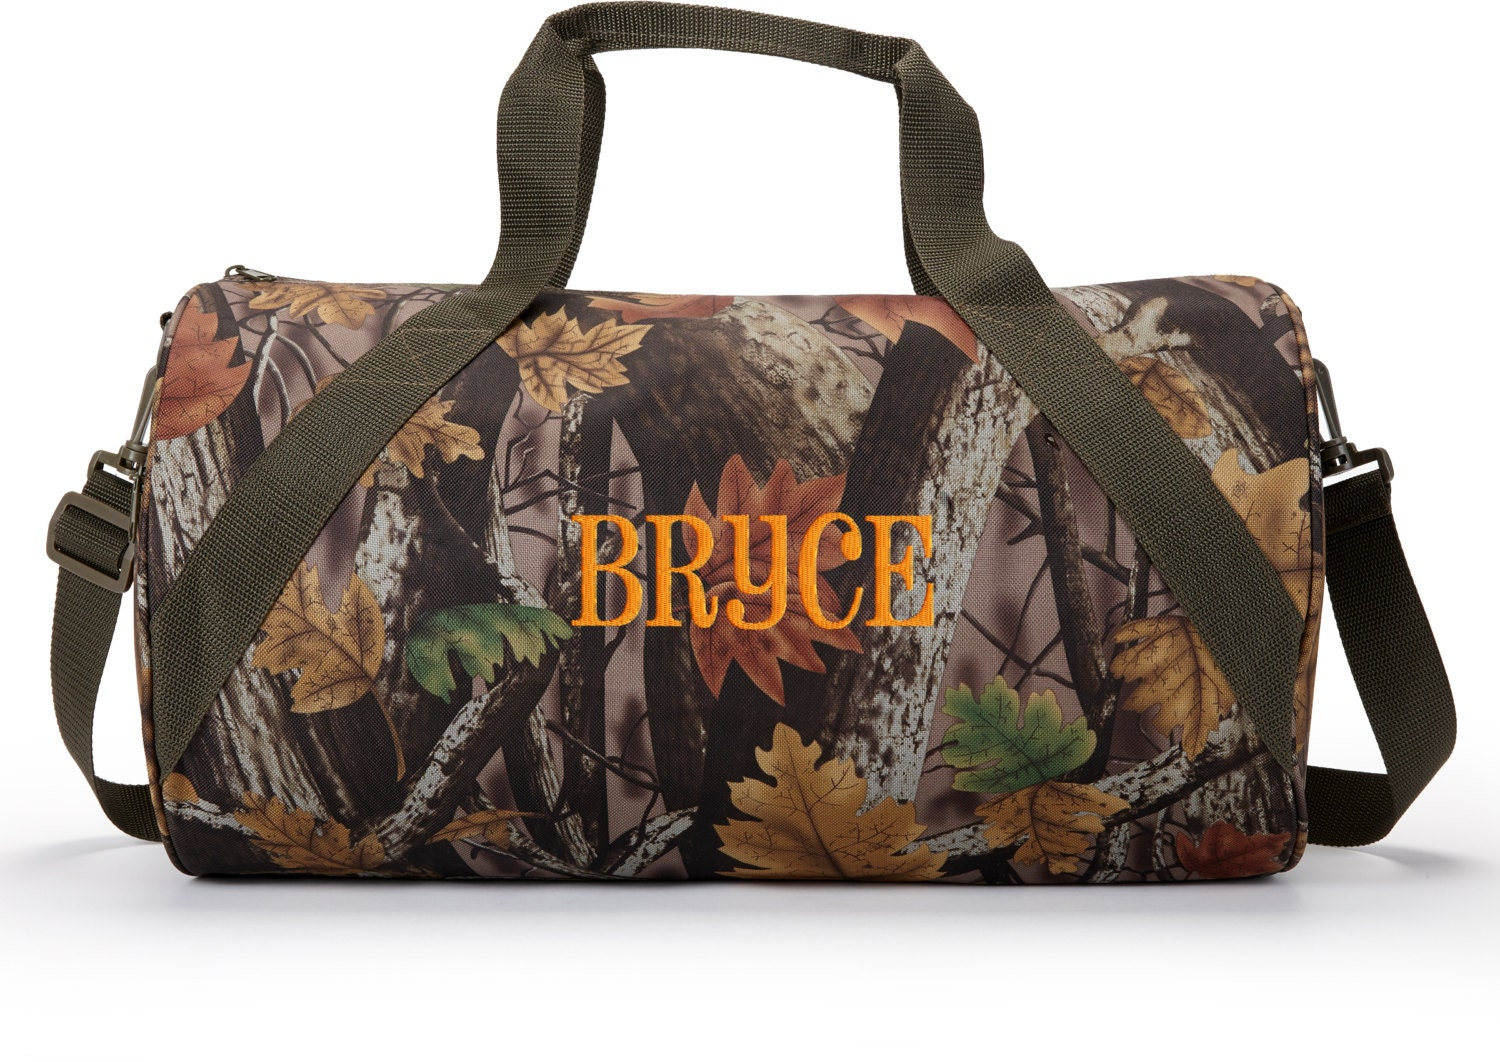 Personalized duffle bag natural camo boys sports monogrammed